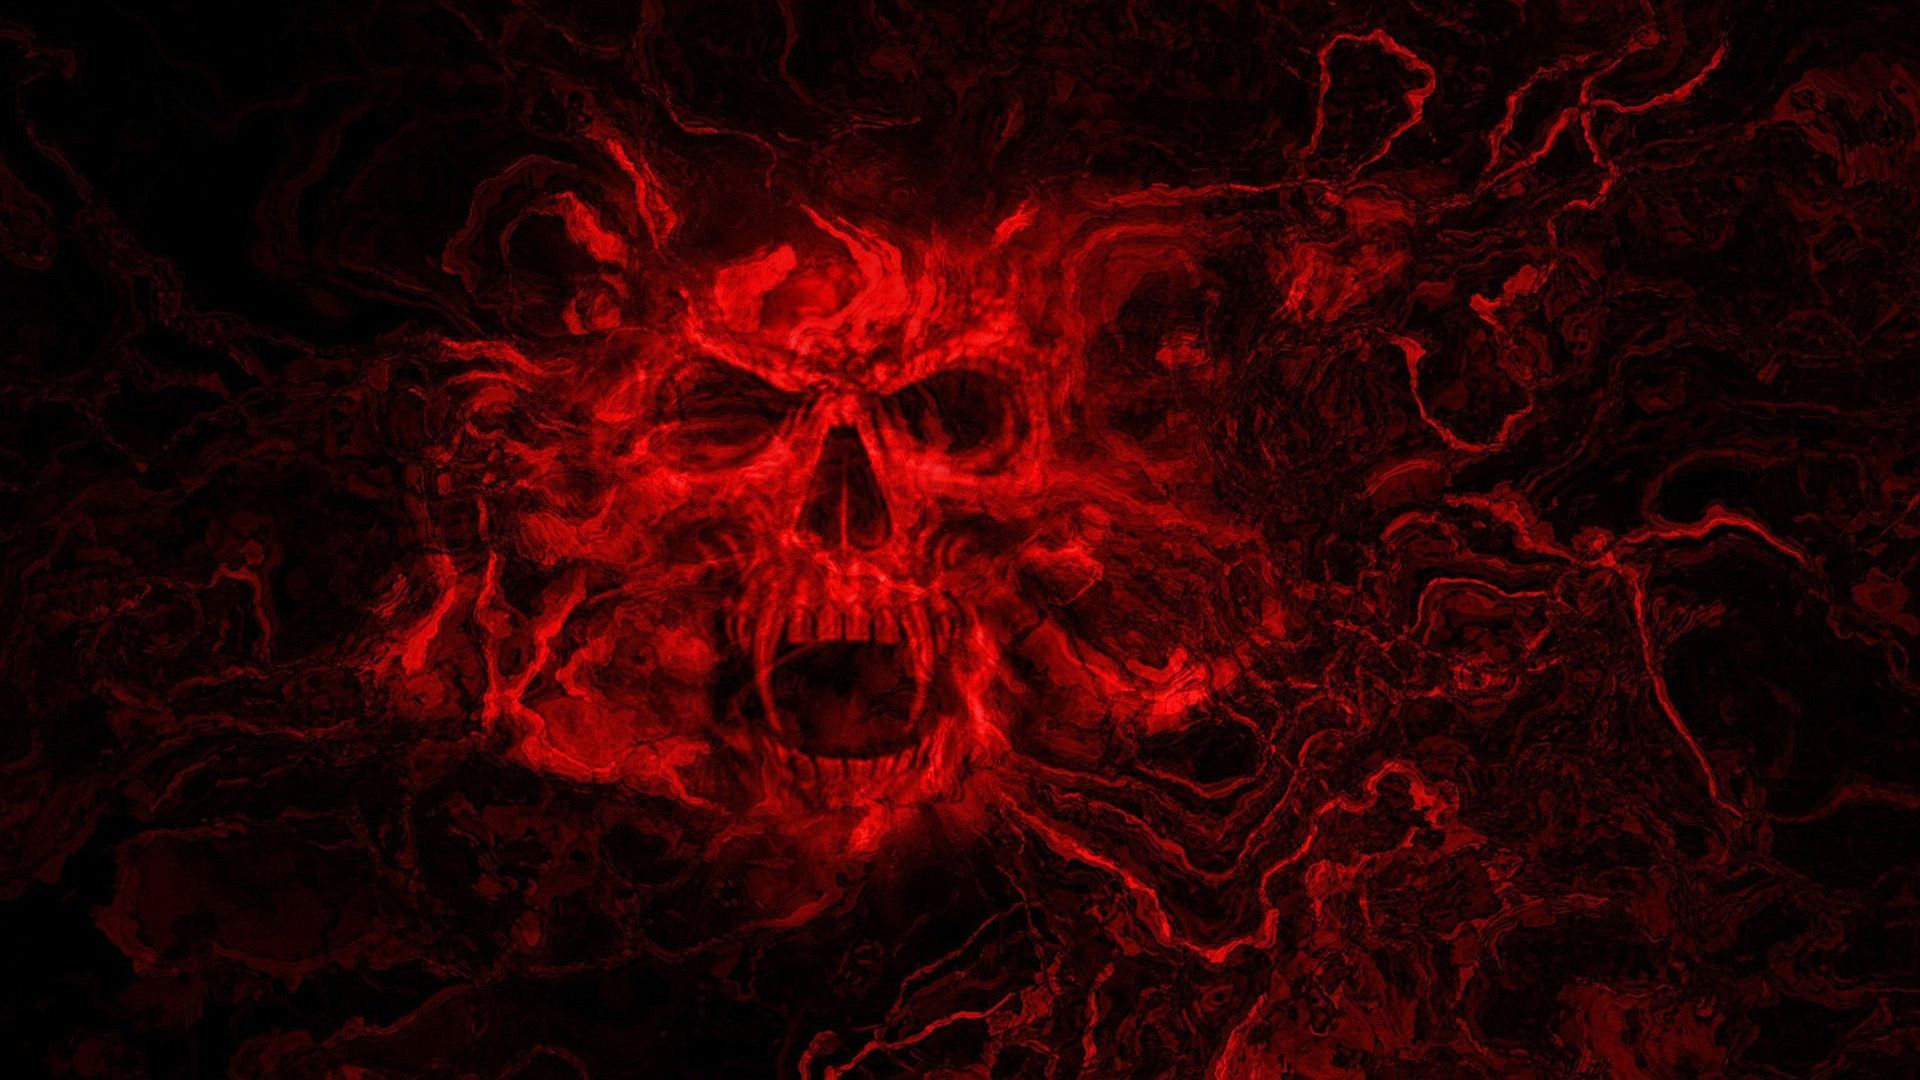 Death Skull Wallpapers Top Free Death Skull Backgrounds